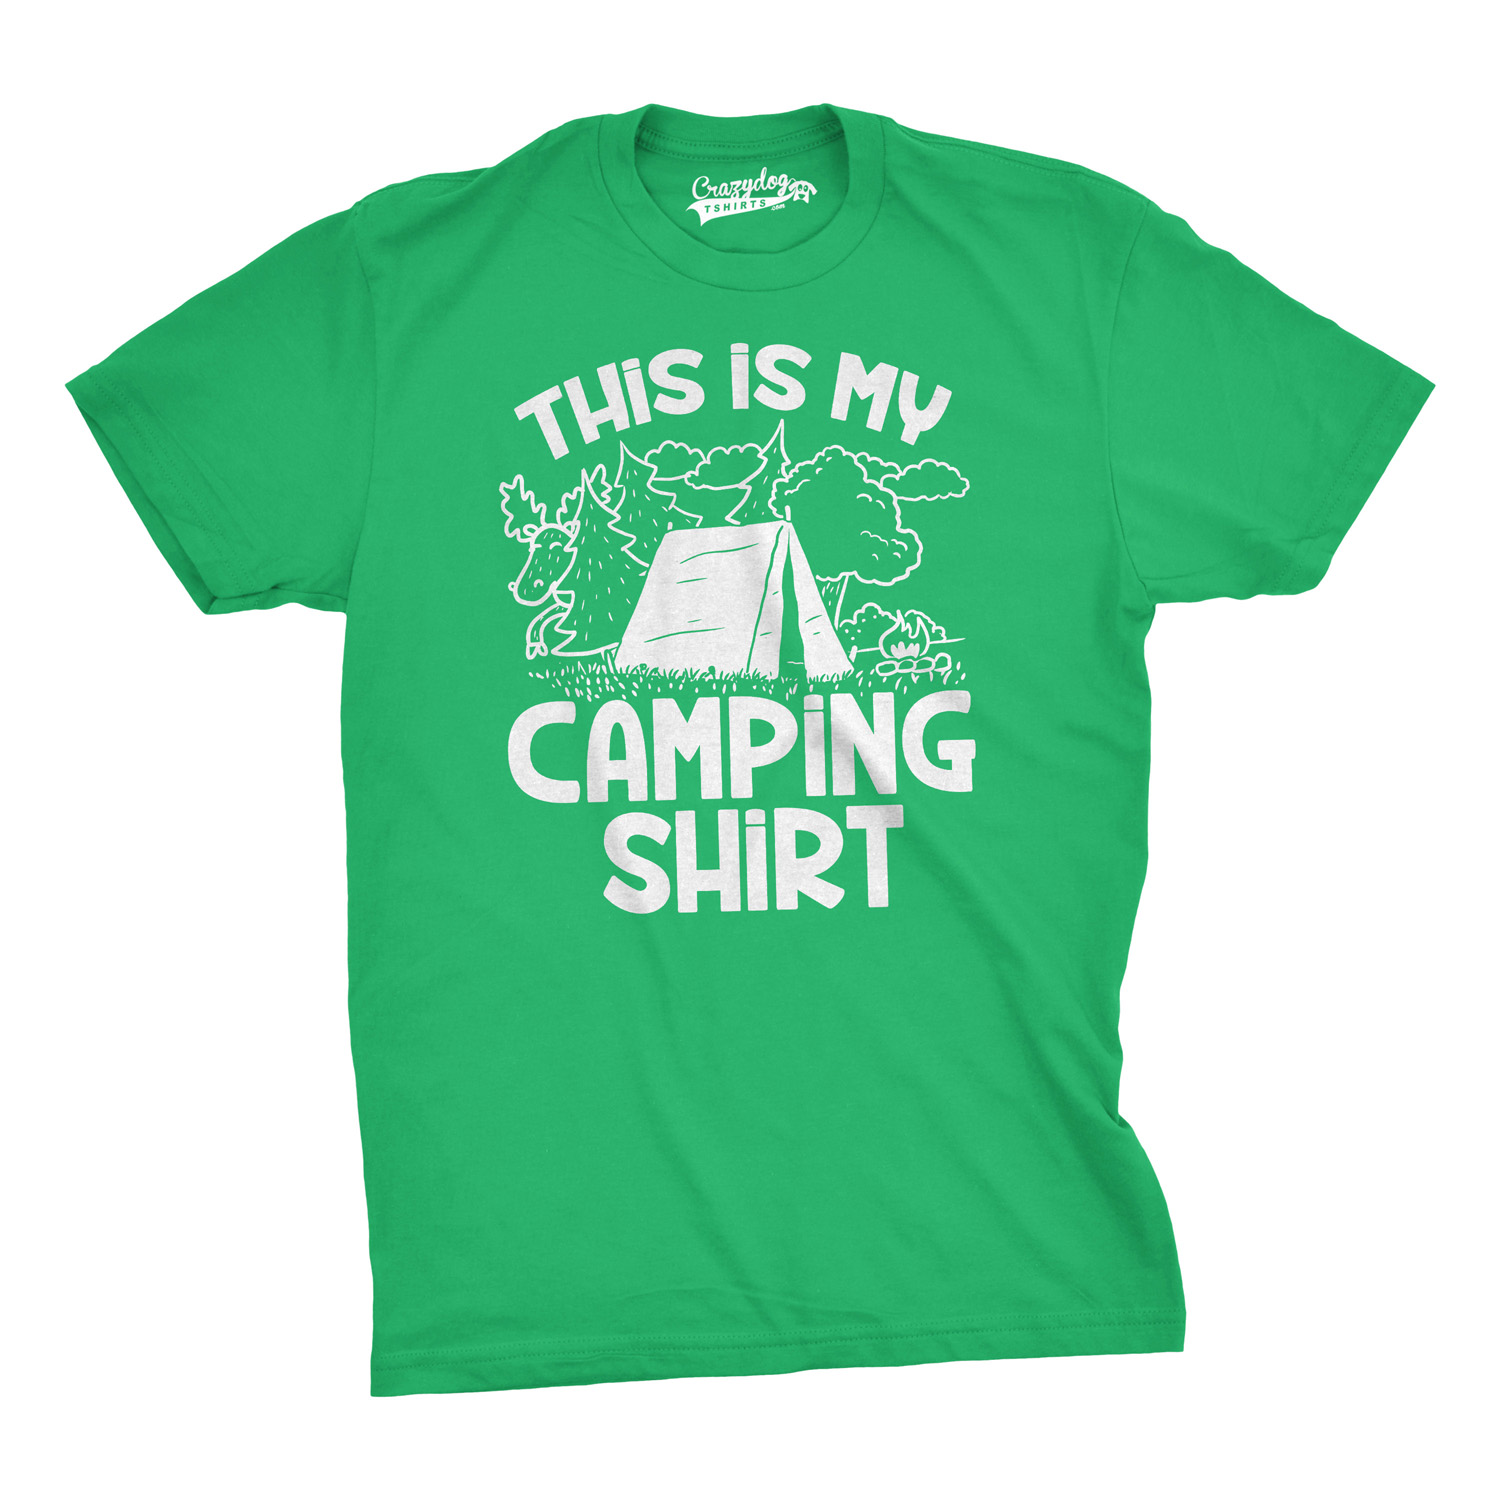 46480c67f0 Mens This Is My Camping Shirt Funny Summer Tent Hiking Outdoor Tee For Guys  (Green) - S